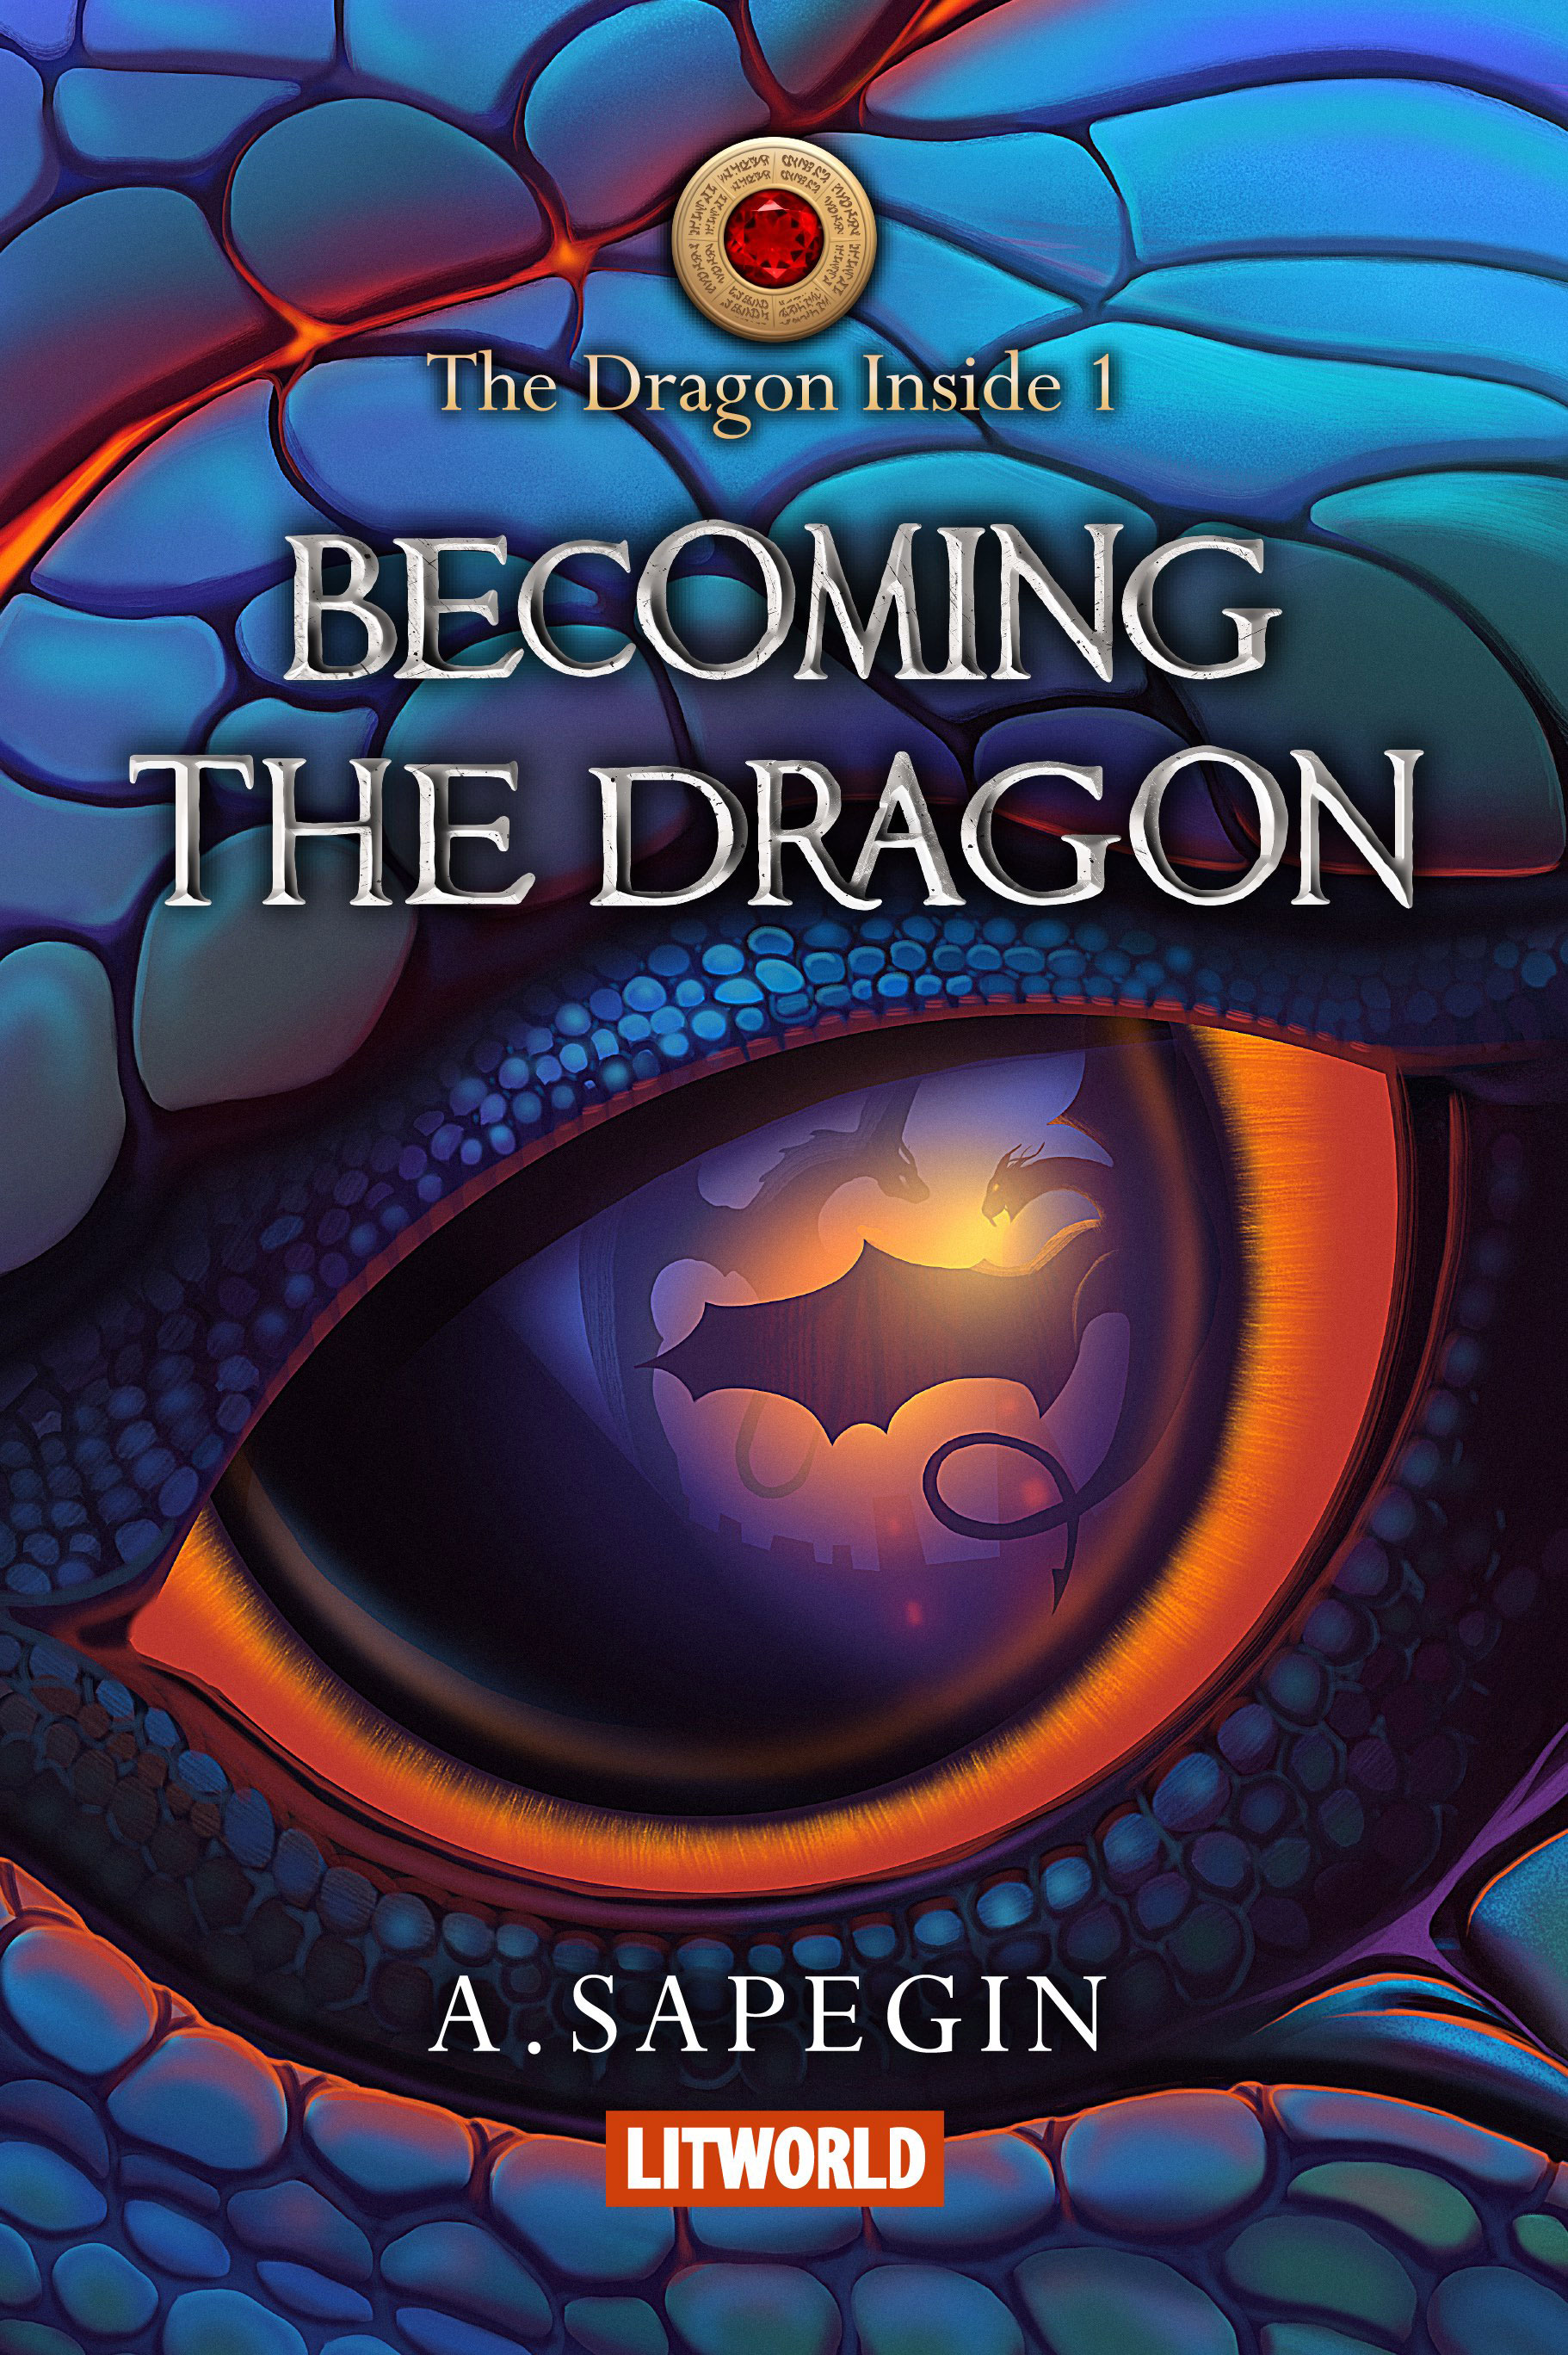 The Dragon Inside 1: Becoming the Dragon